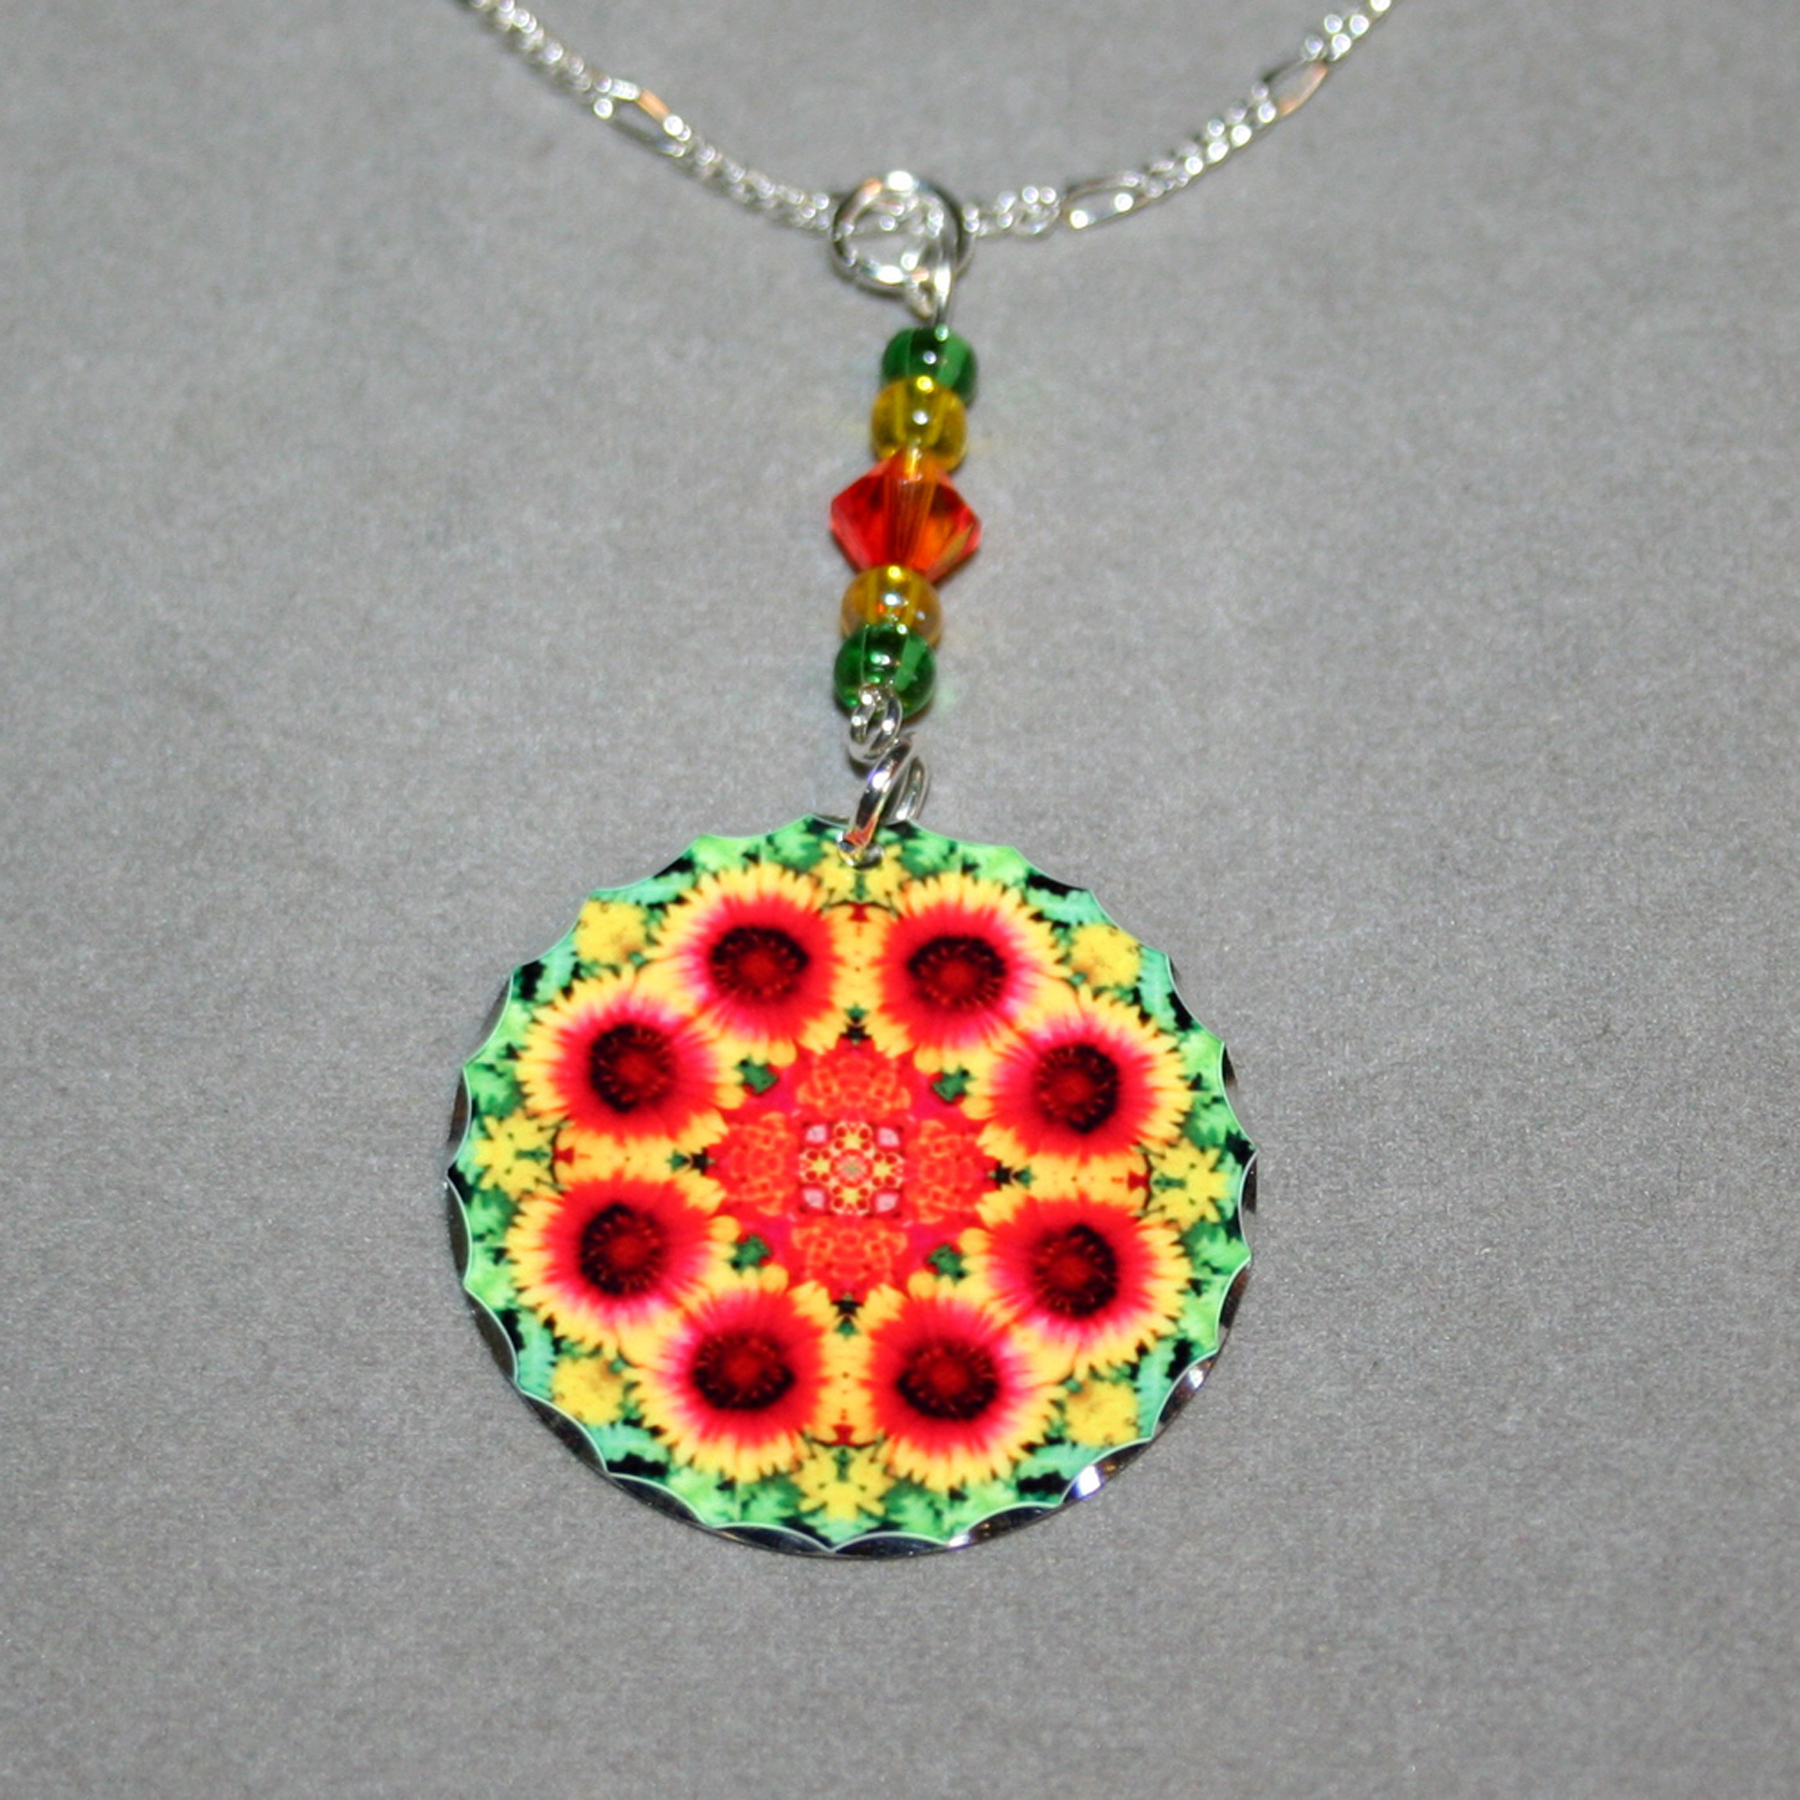 Blanket Flower Charm Necklace Silver Mandala Sacred Geometry Kaleidoscope A Ray of Hope